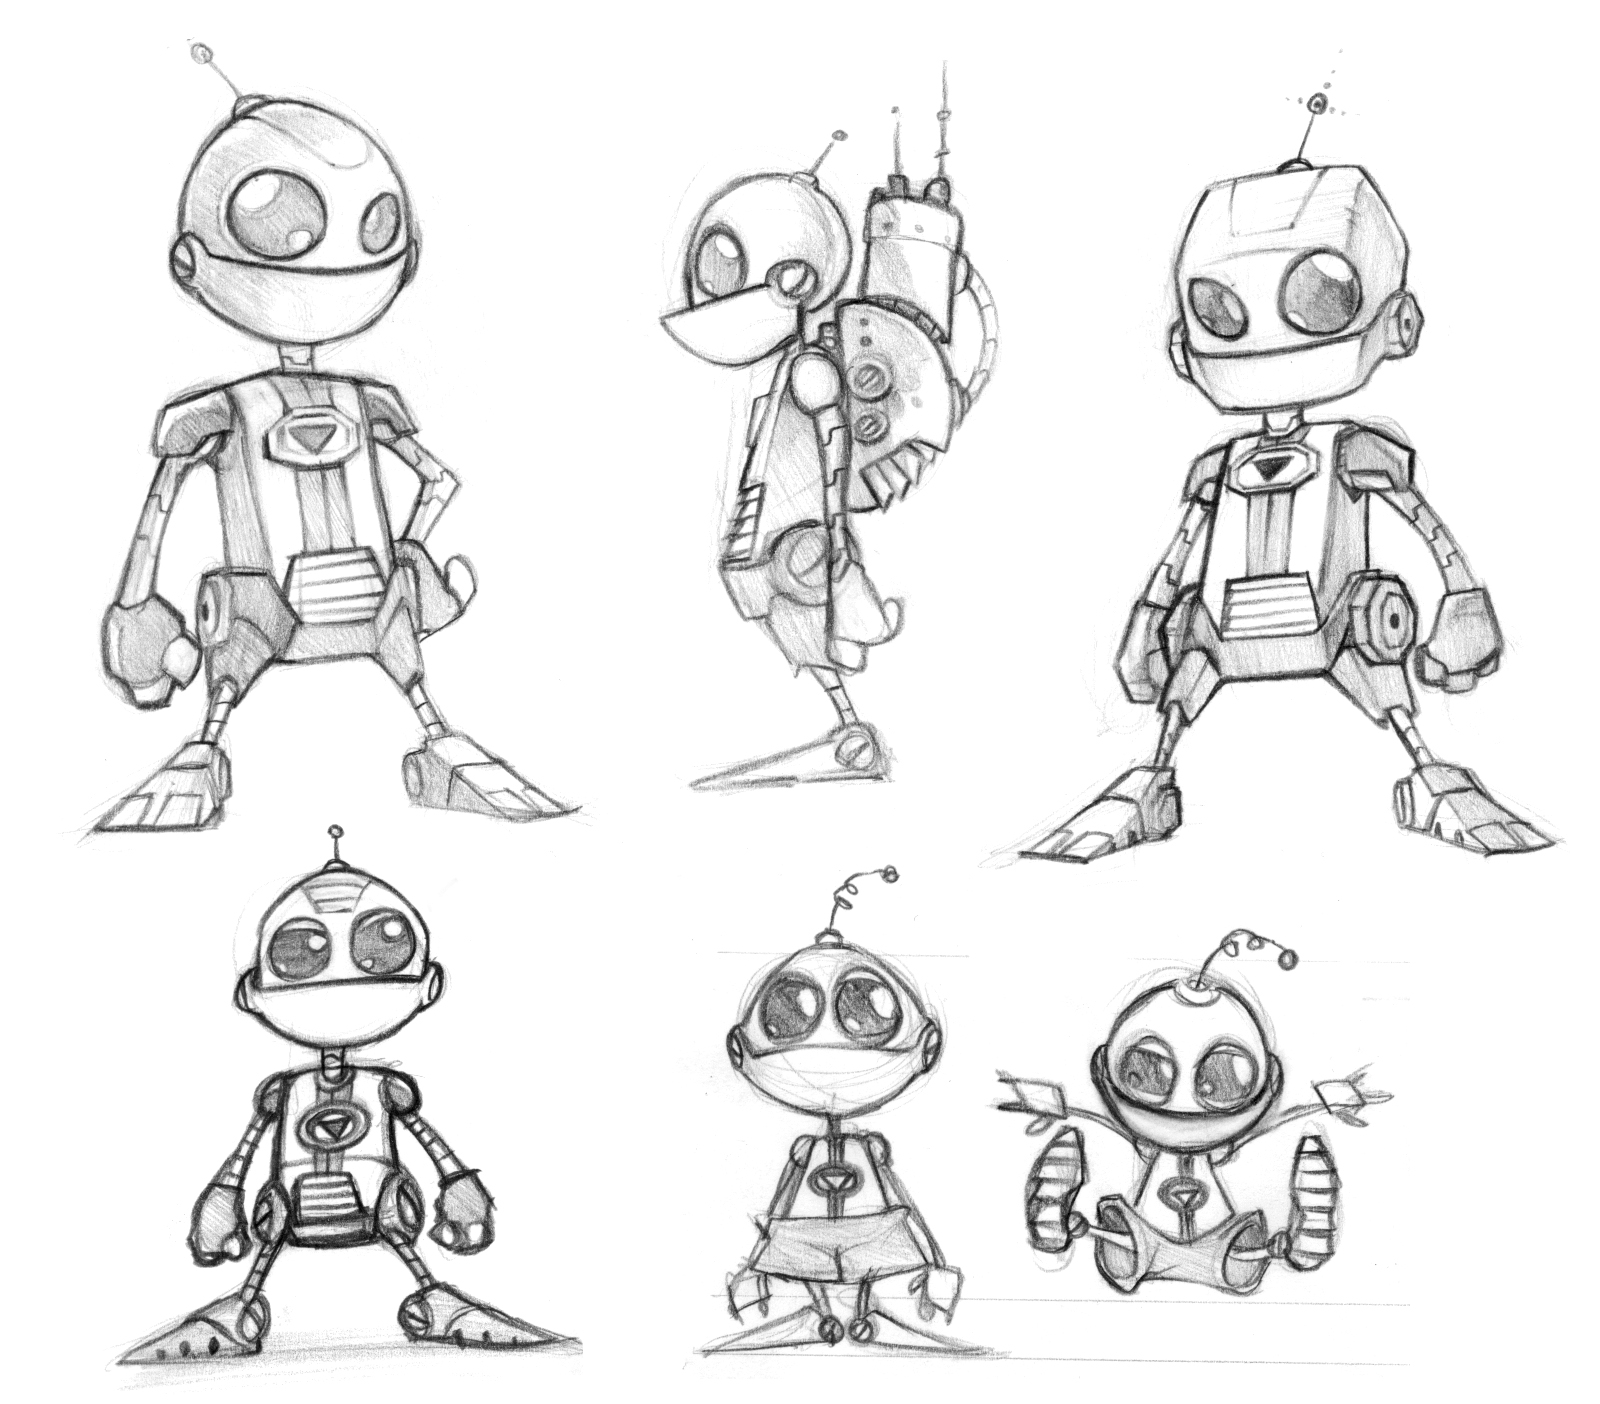 10 Character Design Tips : Ratchet clank years of concept art insomniac games